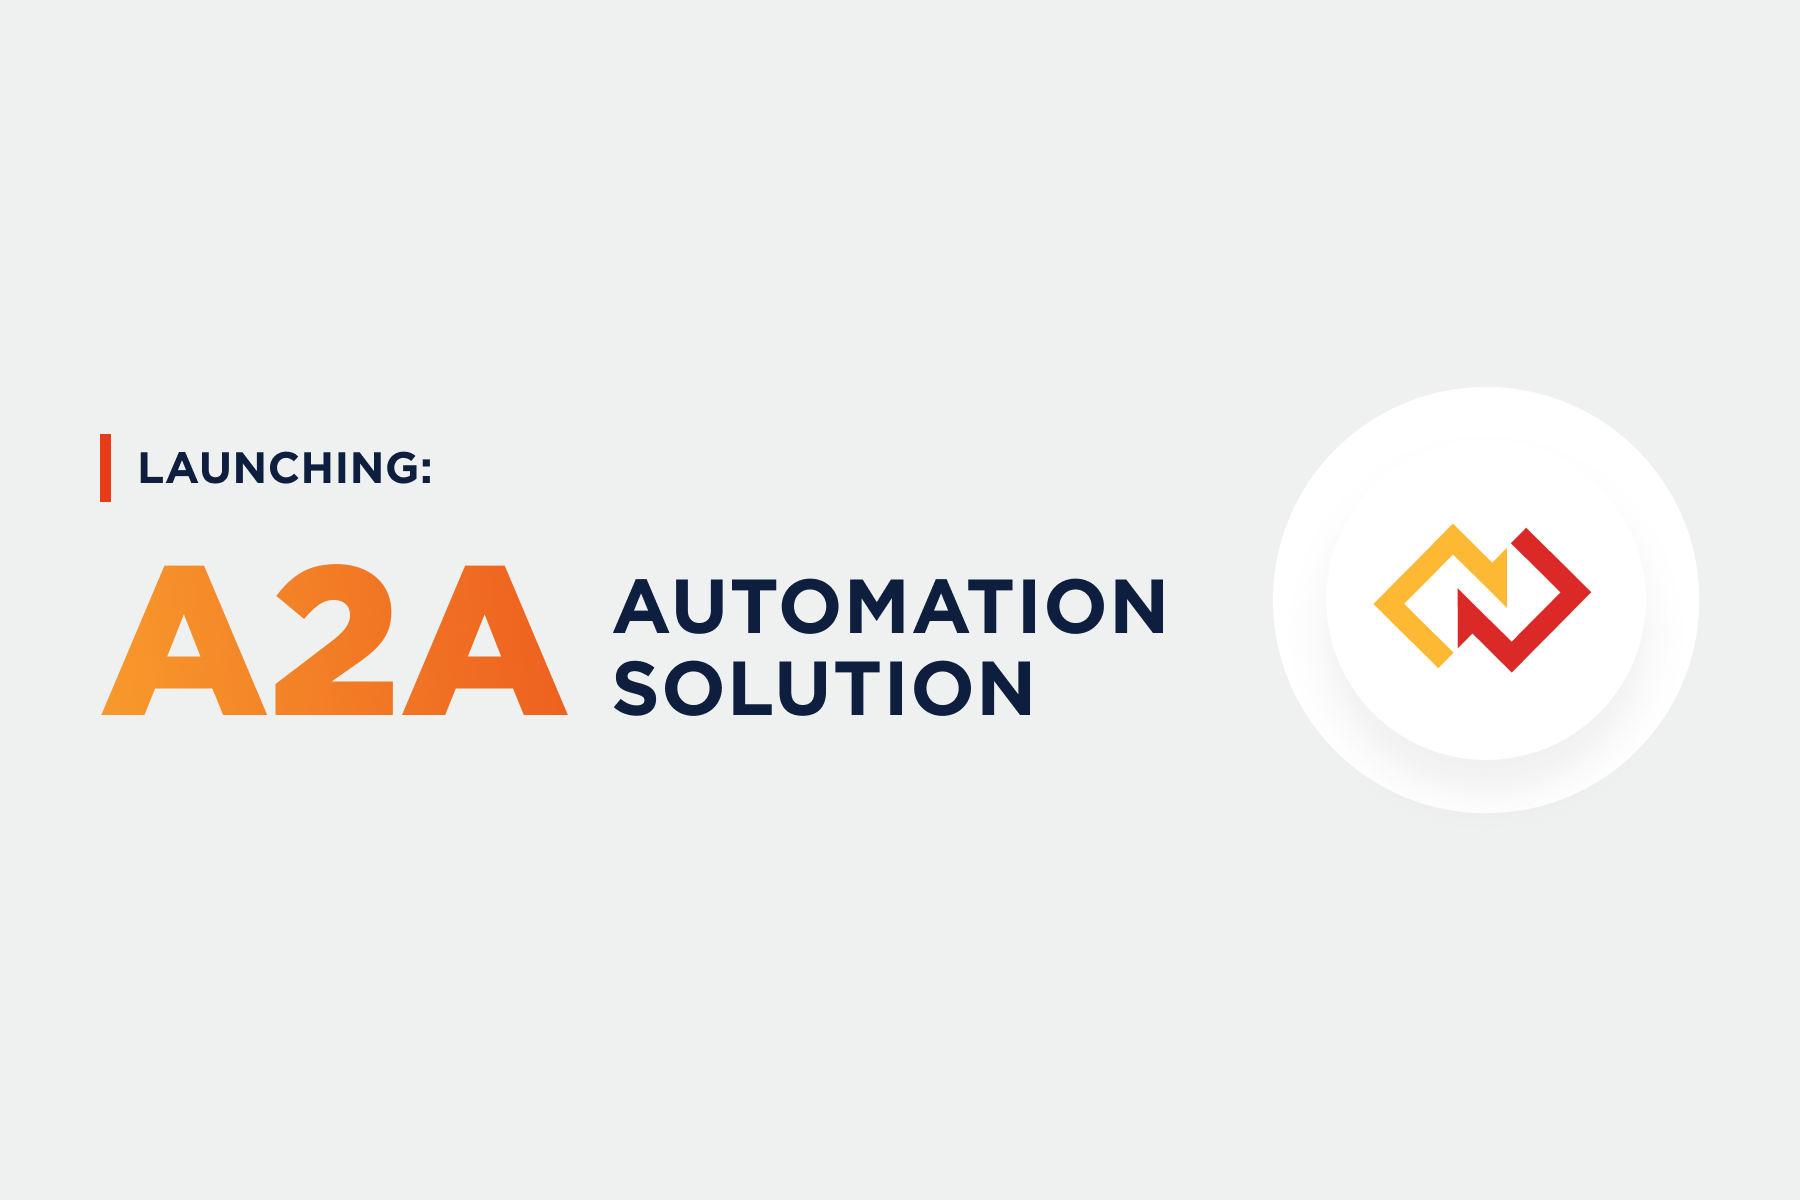 US payments solutions provider Transcard reducing friction in B2B commerce with A2A automation...